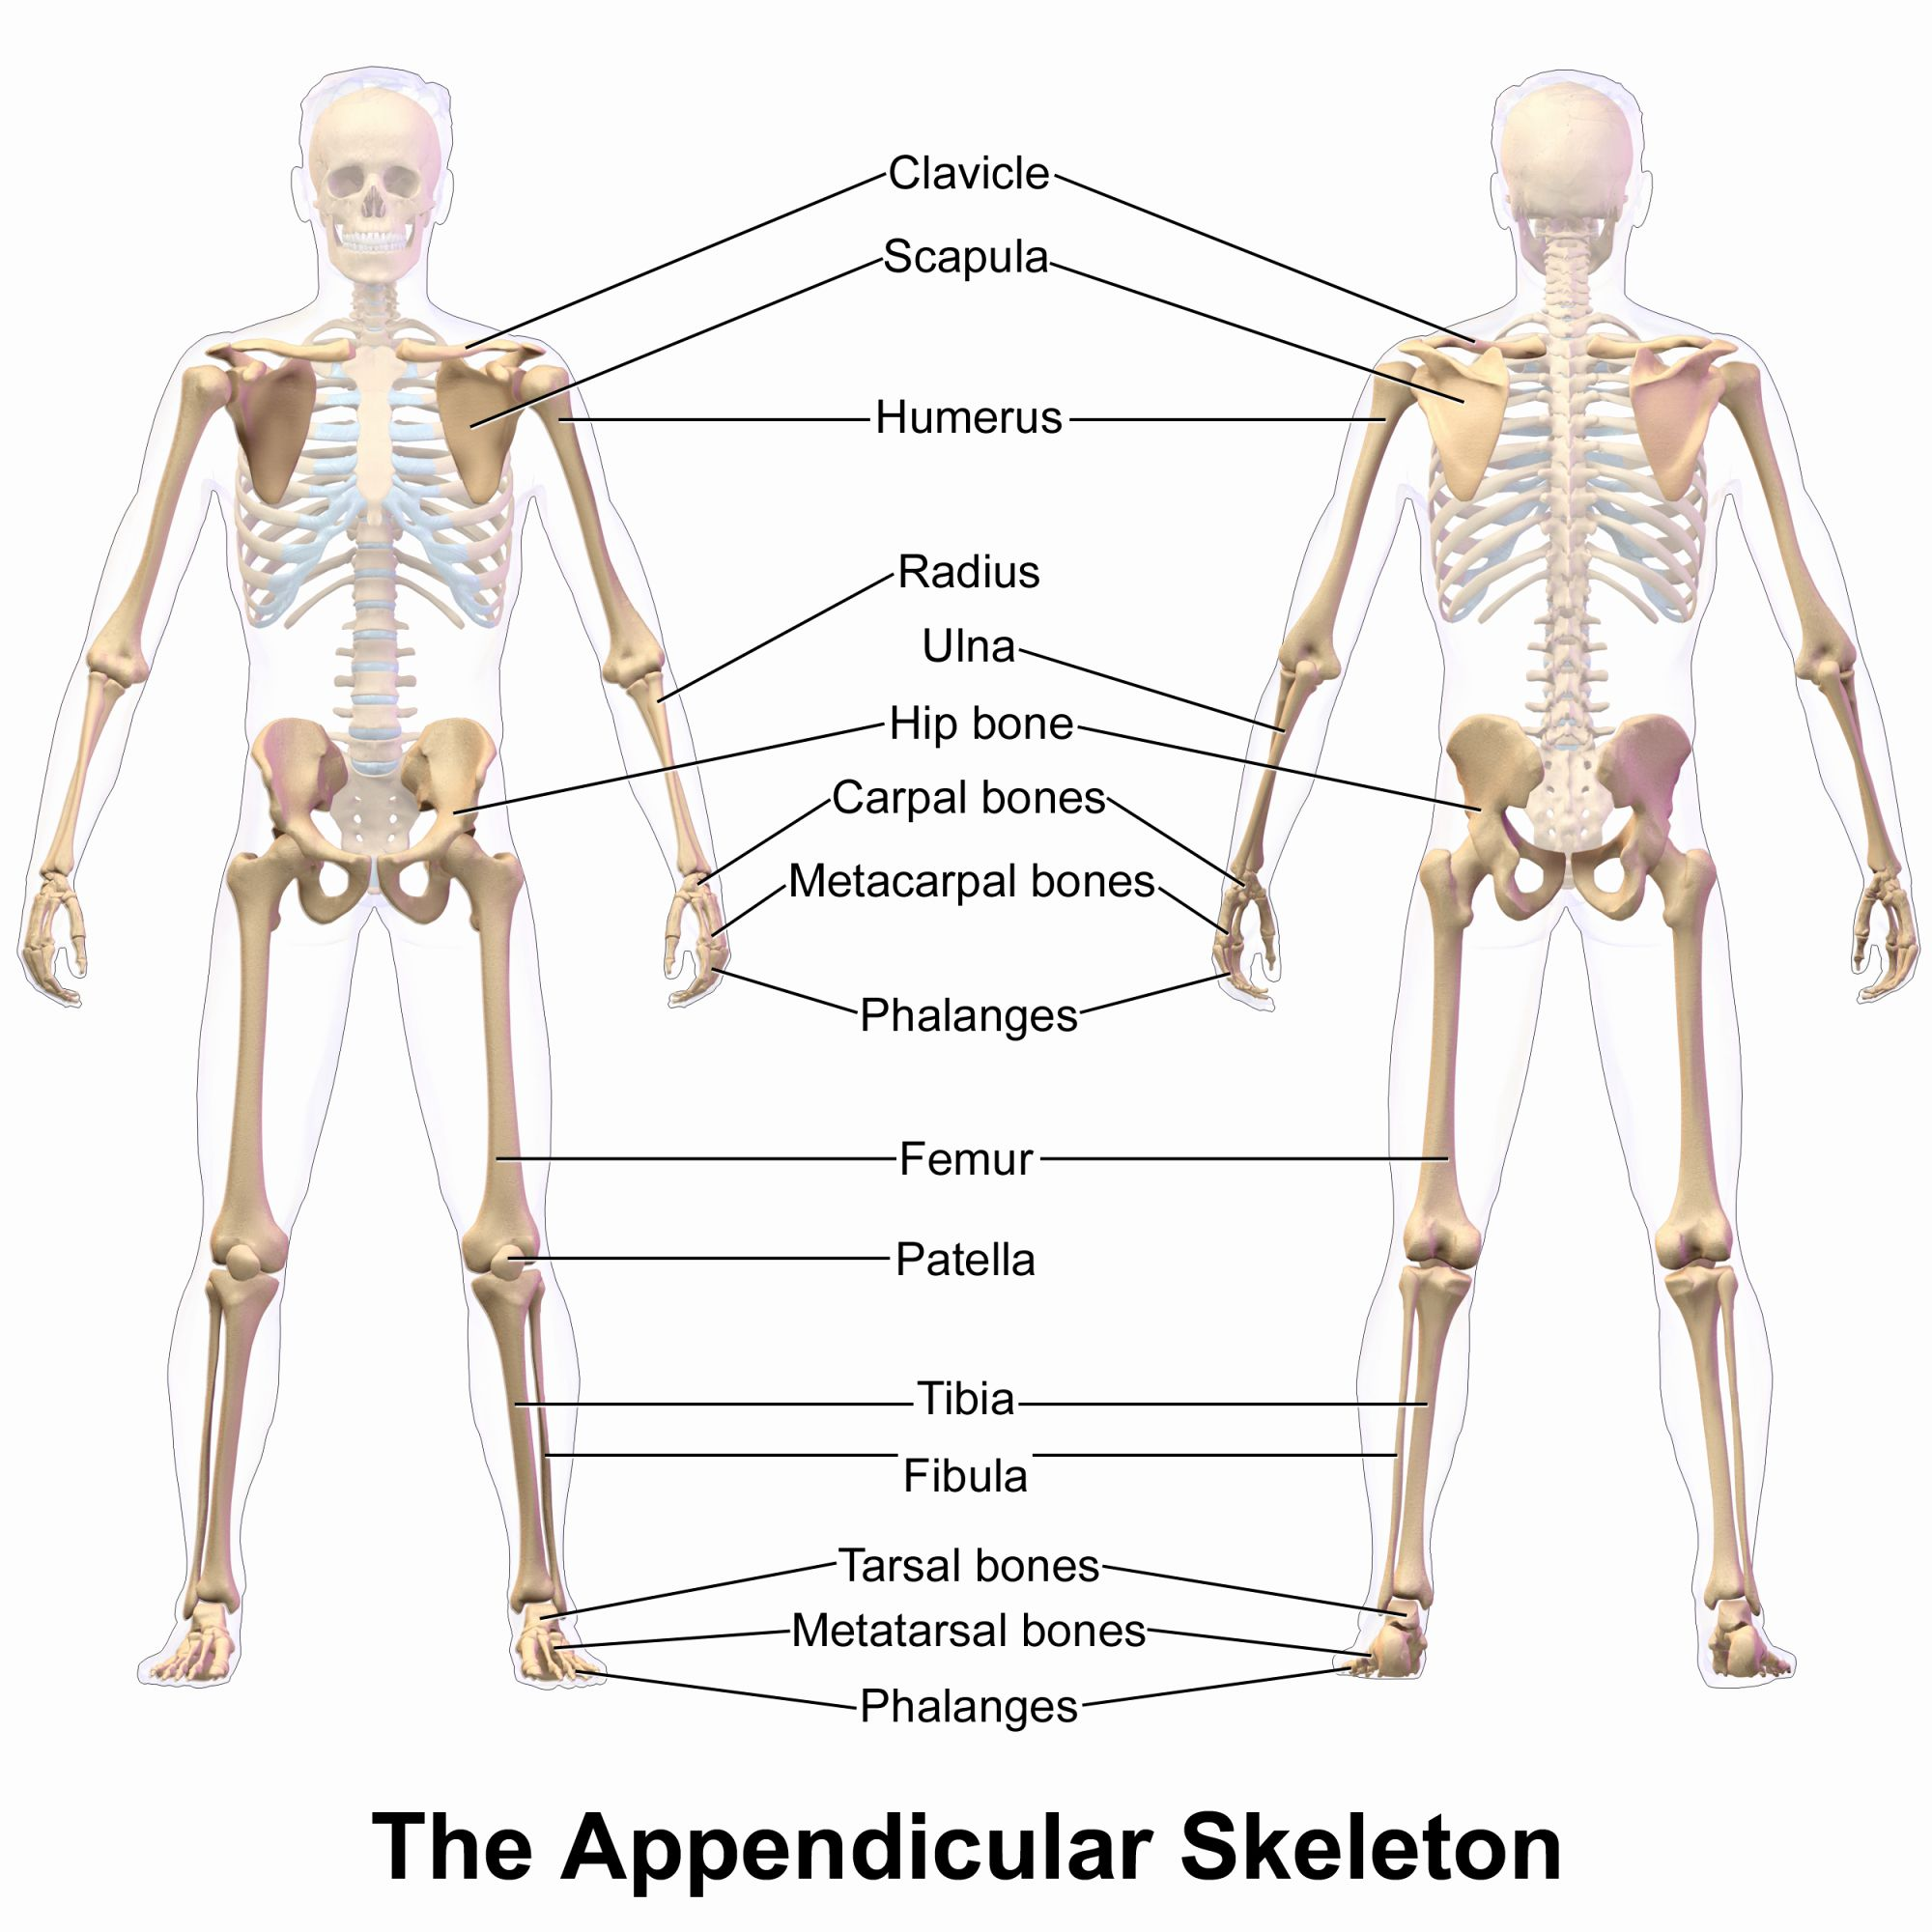 Appendicular Skeleton Worksheet Answers Unique The